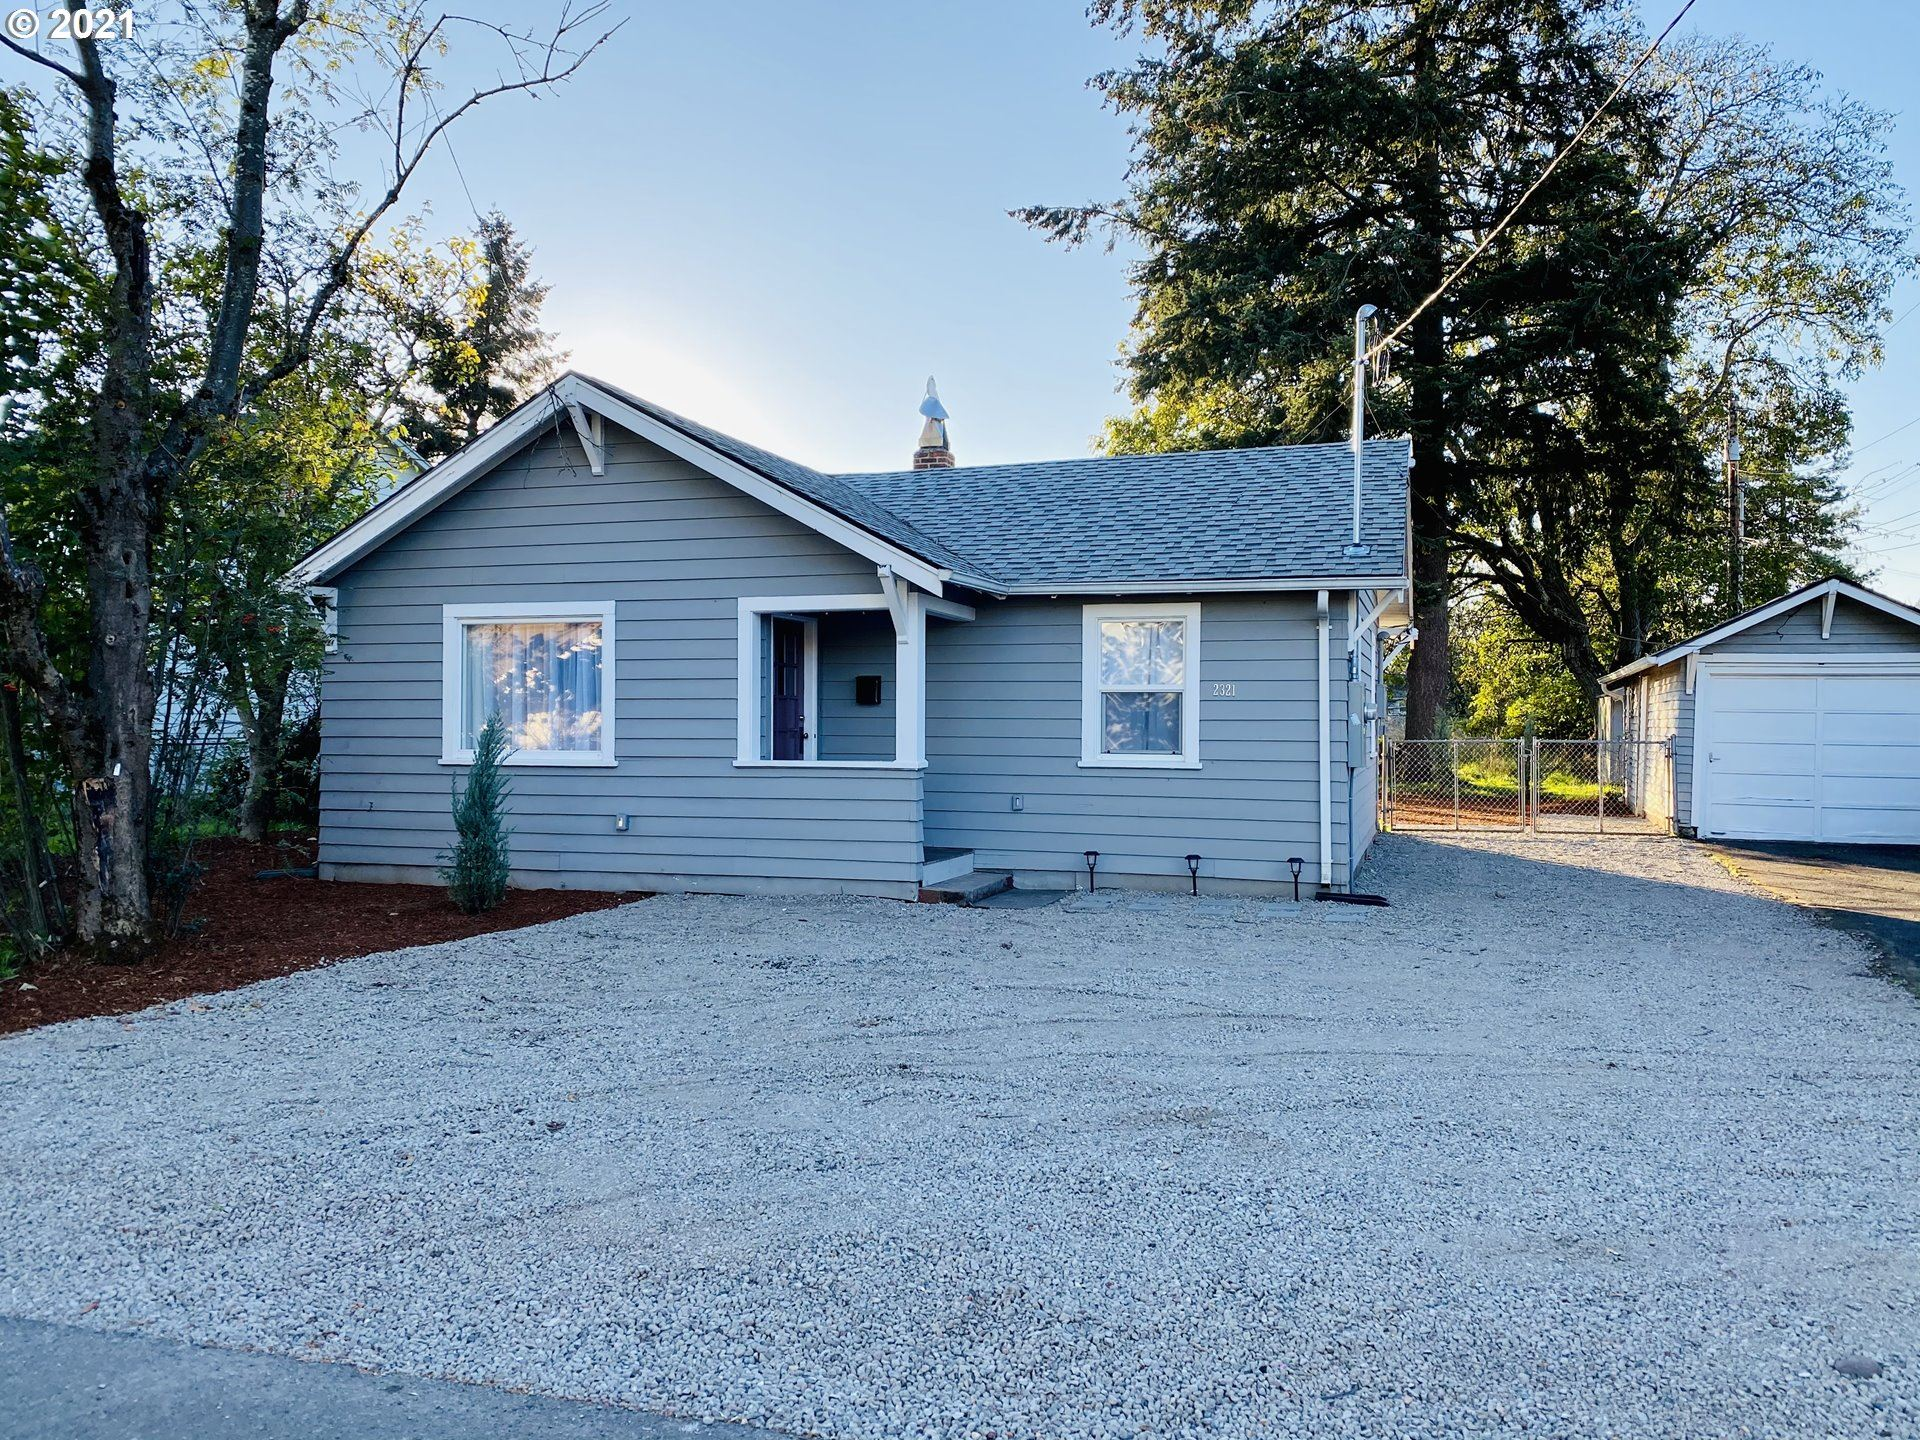 2321 SE 89TH AVE, Portland, OR 97216 - MLS#: 21021662